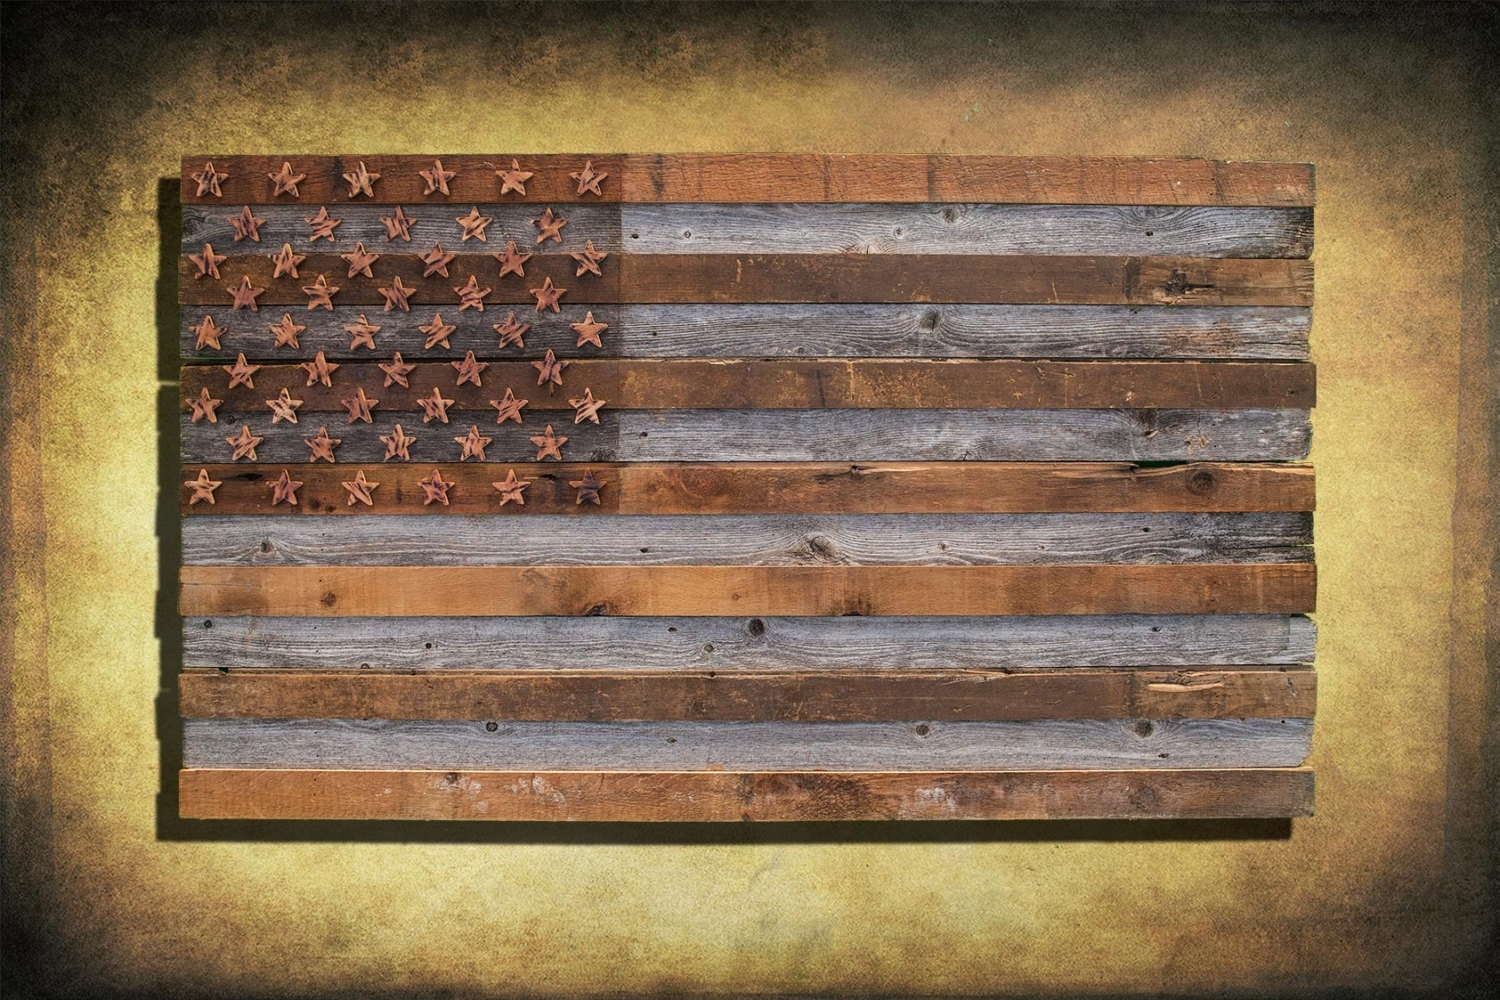 Barnwood American Flag, 100 Year Old Wood, One Of A Kind, 3D, Wooden Within Most Recent Wooden American Flag Wall Art (Gallery 7 of 20)